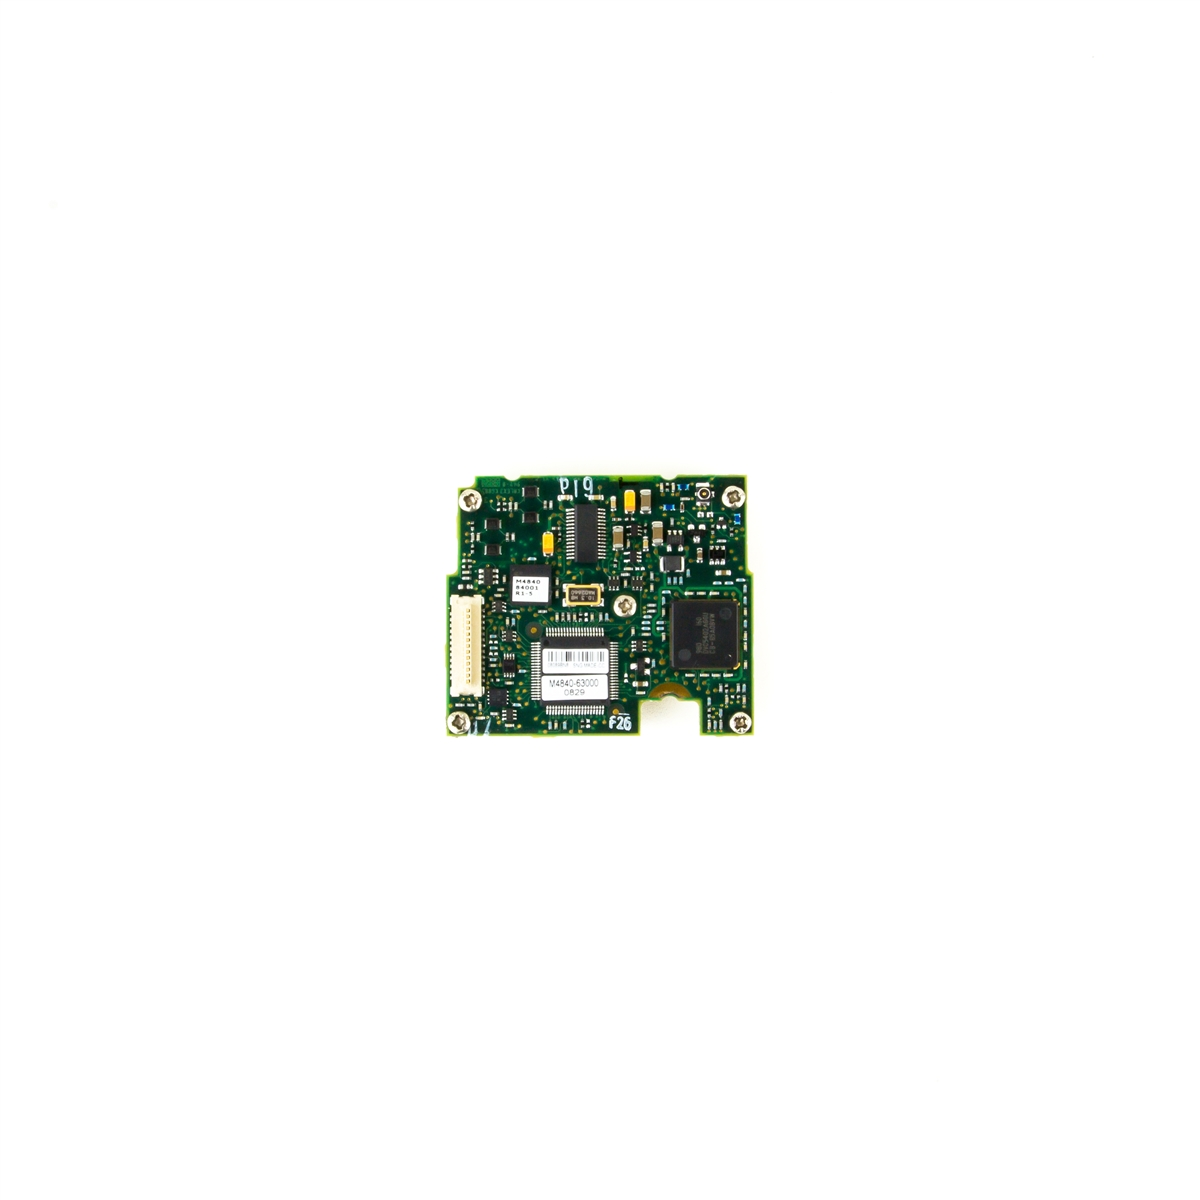 Philips IntelliVue M4841A TRx+ Telemetry Transmitter S01 S02 S03 RF Radio  Module Circuit Board PC Assembly 1 4 GHz